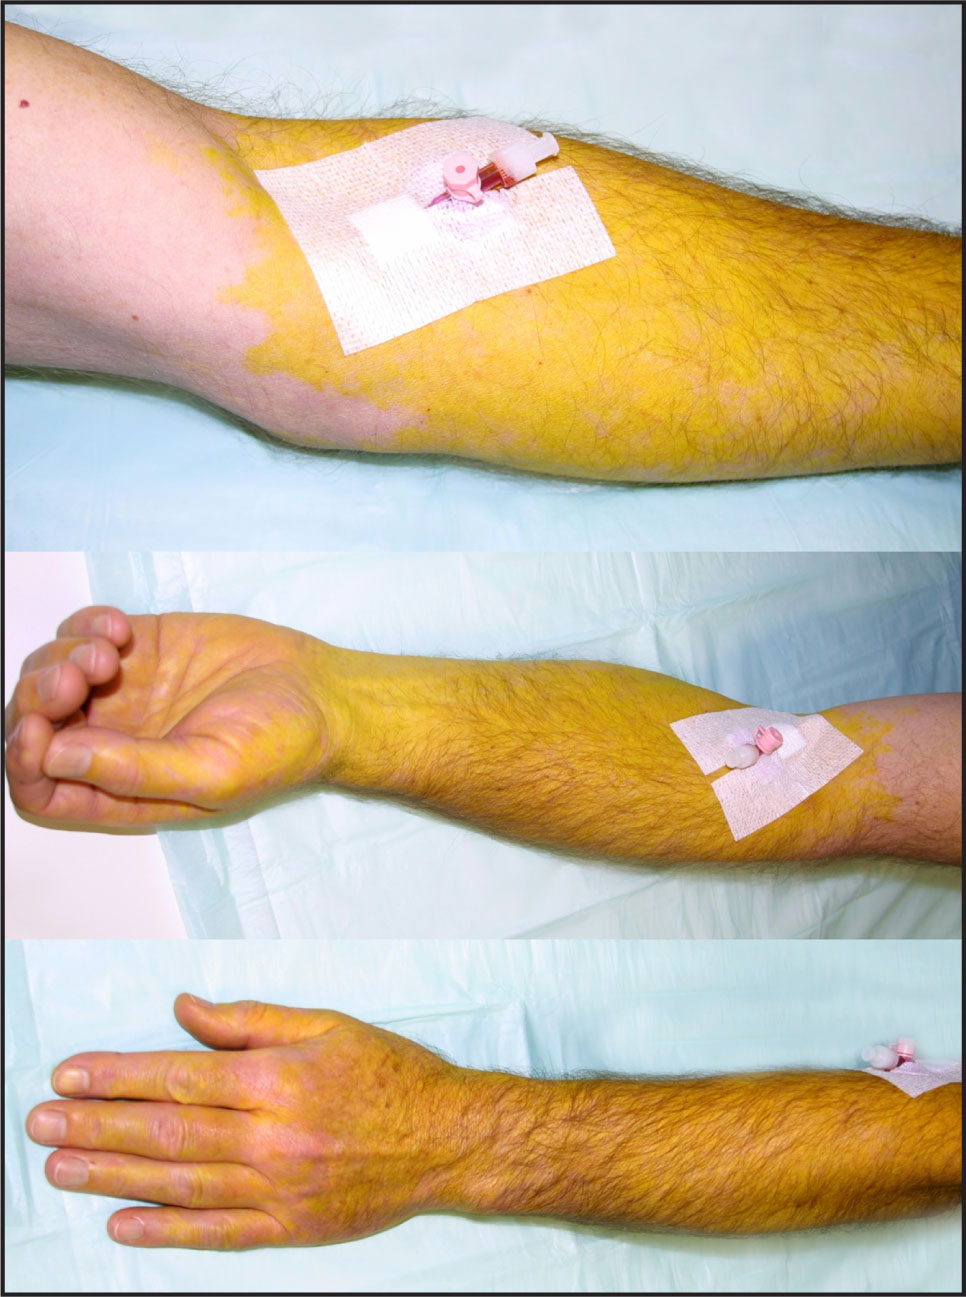 Sharply Demarcated Yellow Discoloration of the Skin Distal to the Injection Site Documented a Few Minutes After the Inadvertent Intra-Arterial Injection of Fluorescein.